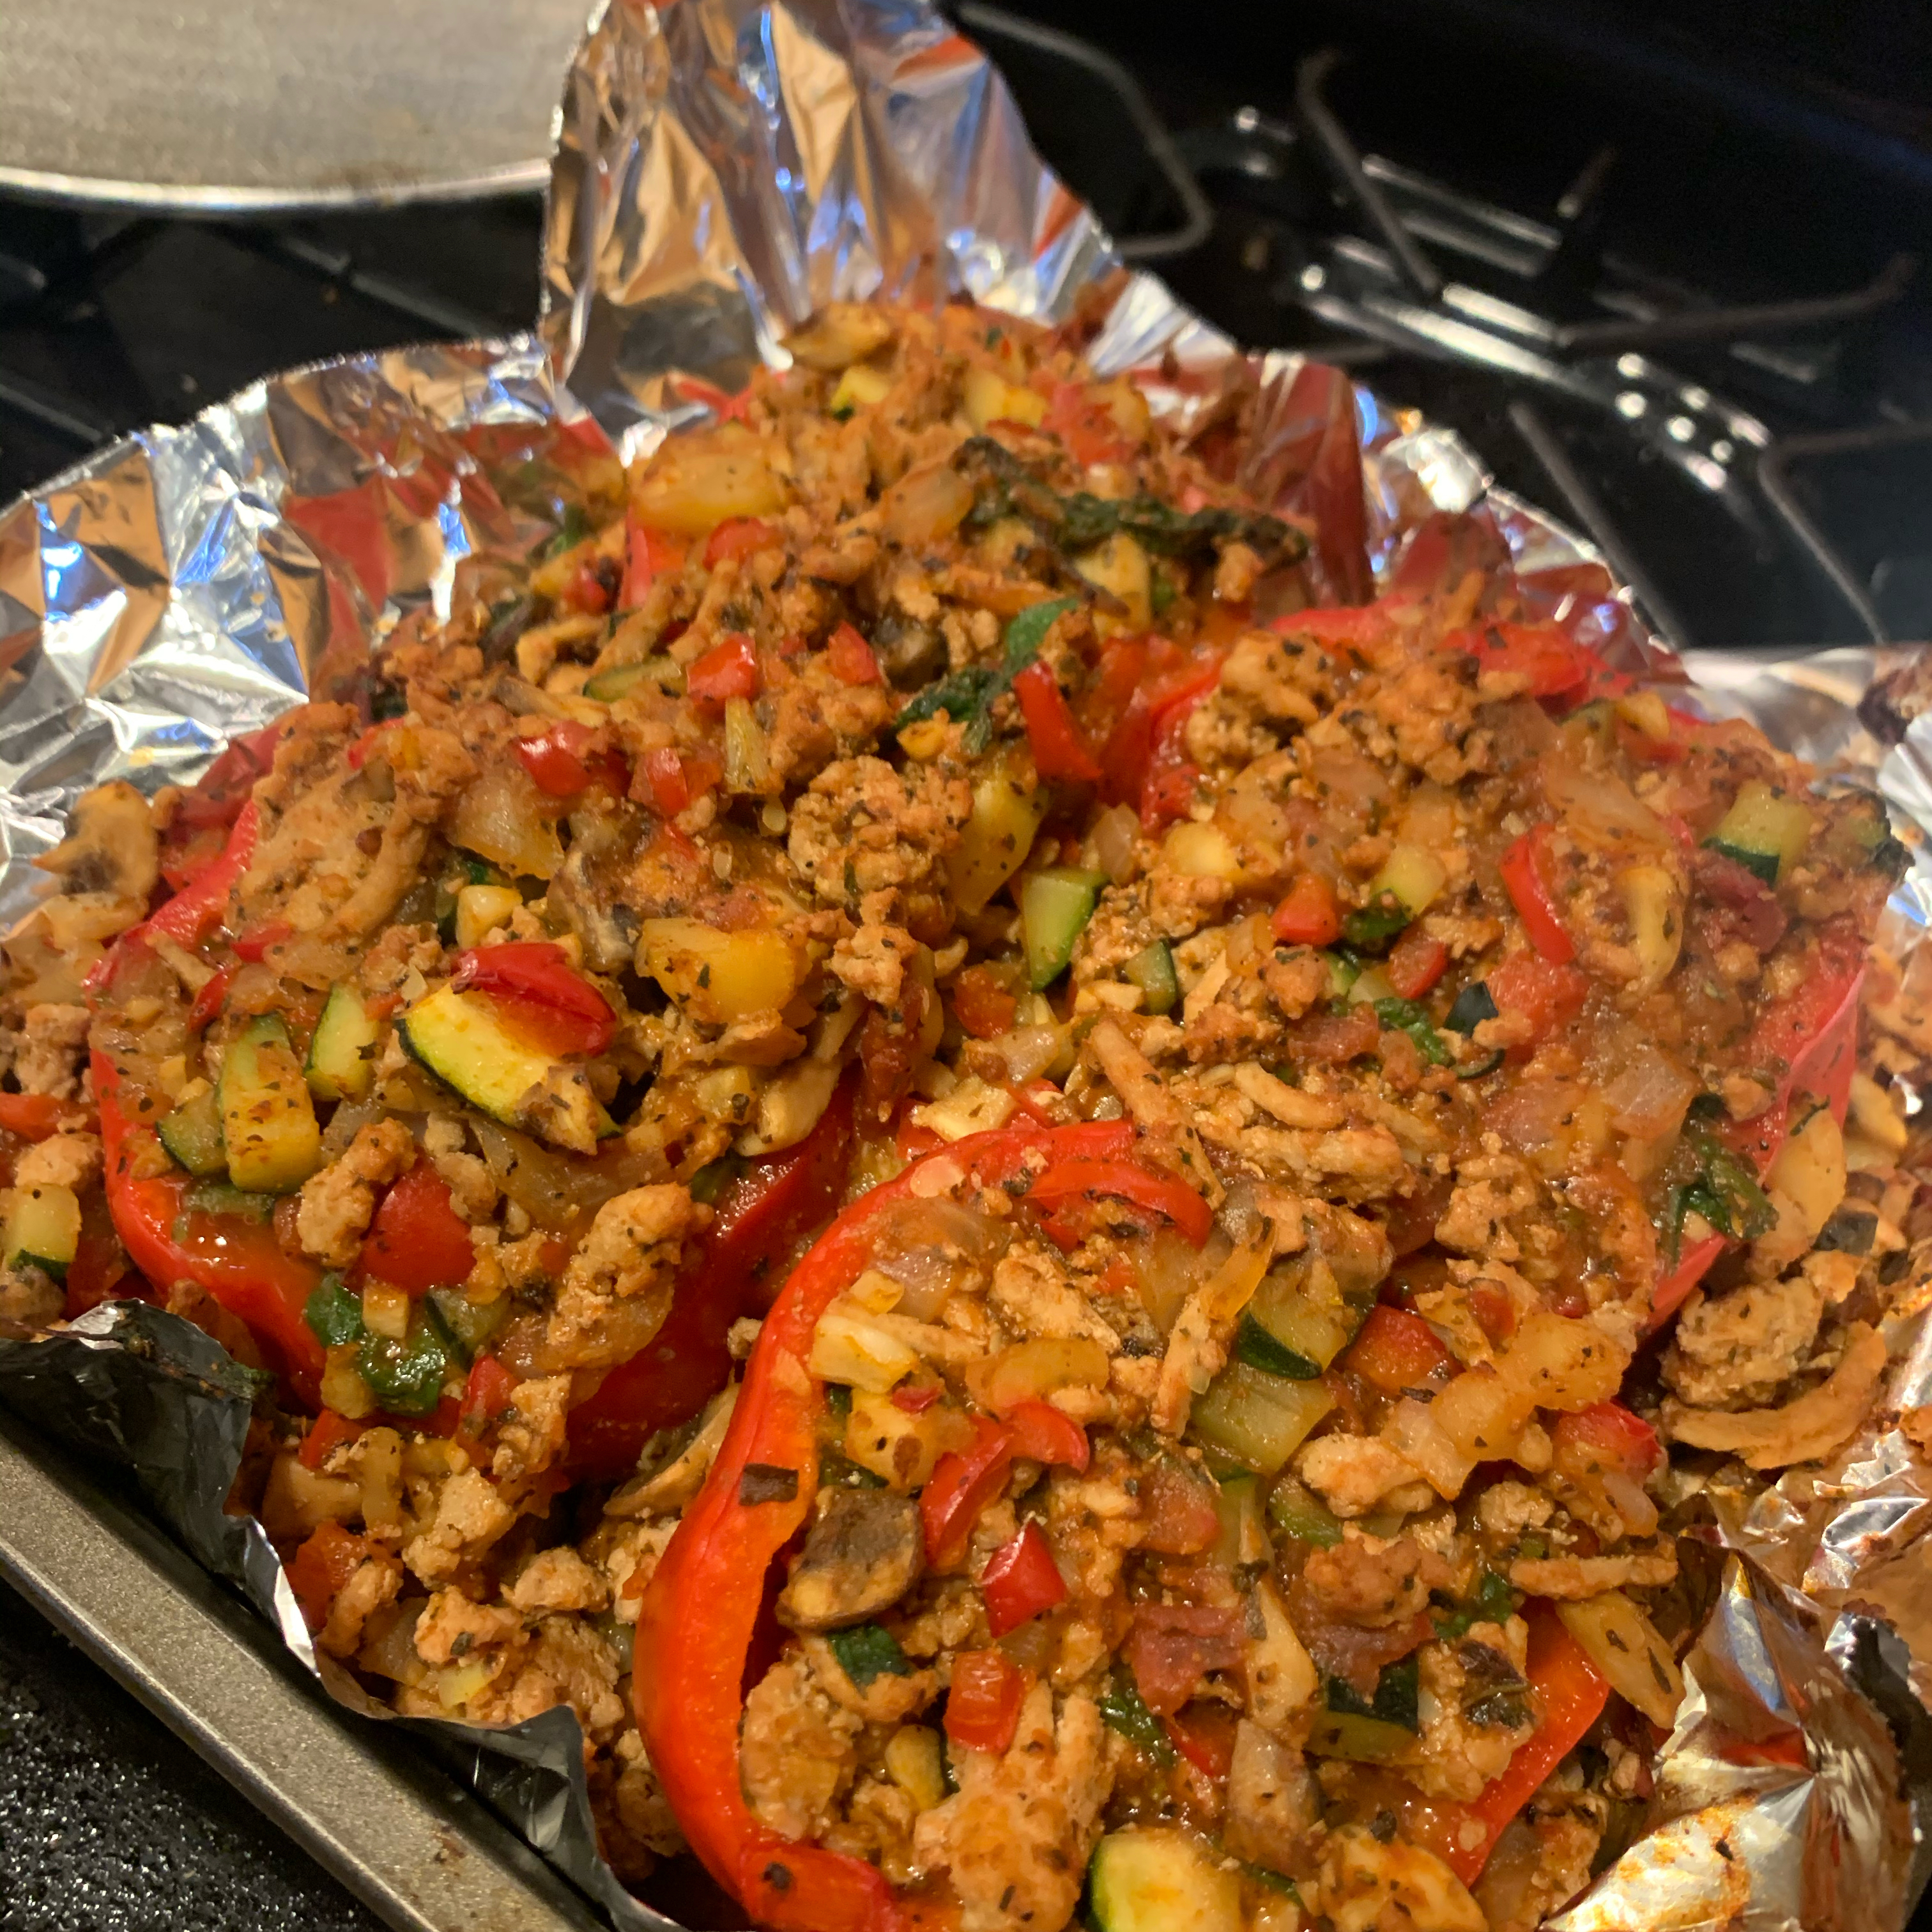 Stuffed Peppers with Turkey and Vegetables Karen Kina